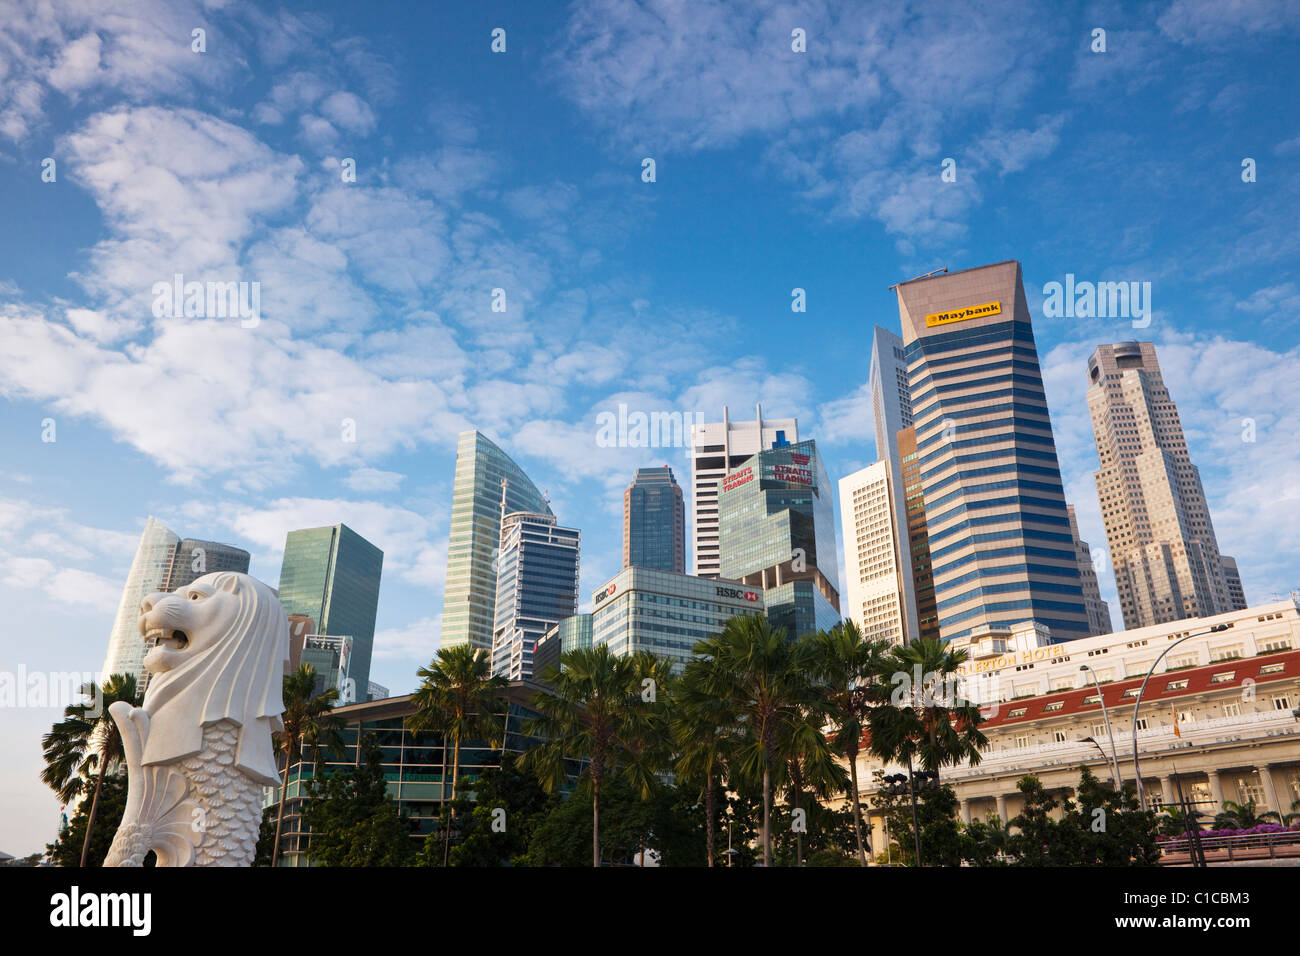 The Merlion Statue With City Skyline In Background Marina Bay Singapore